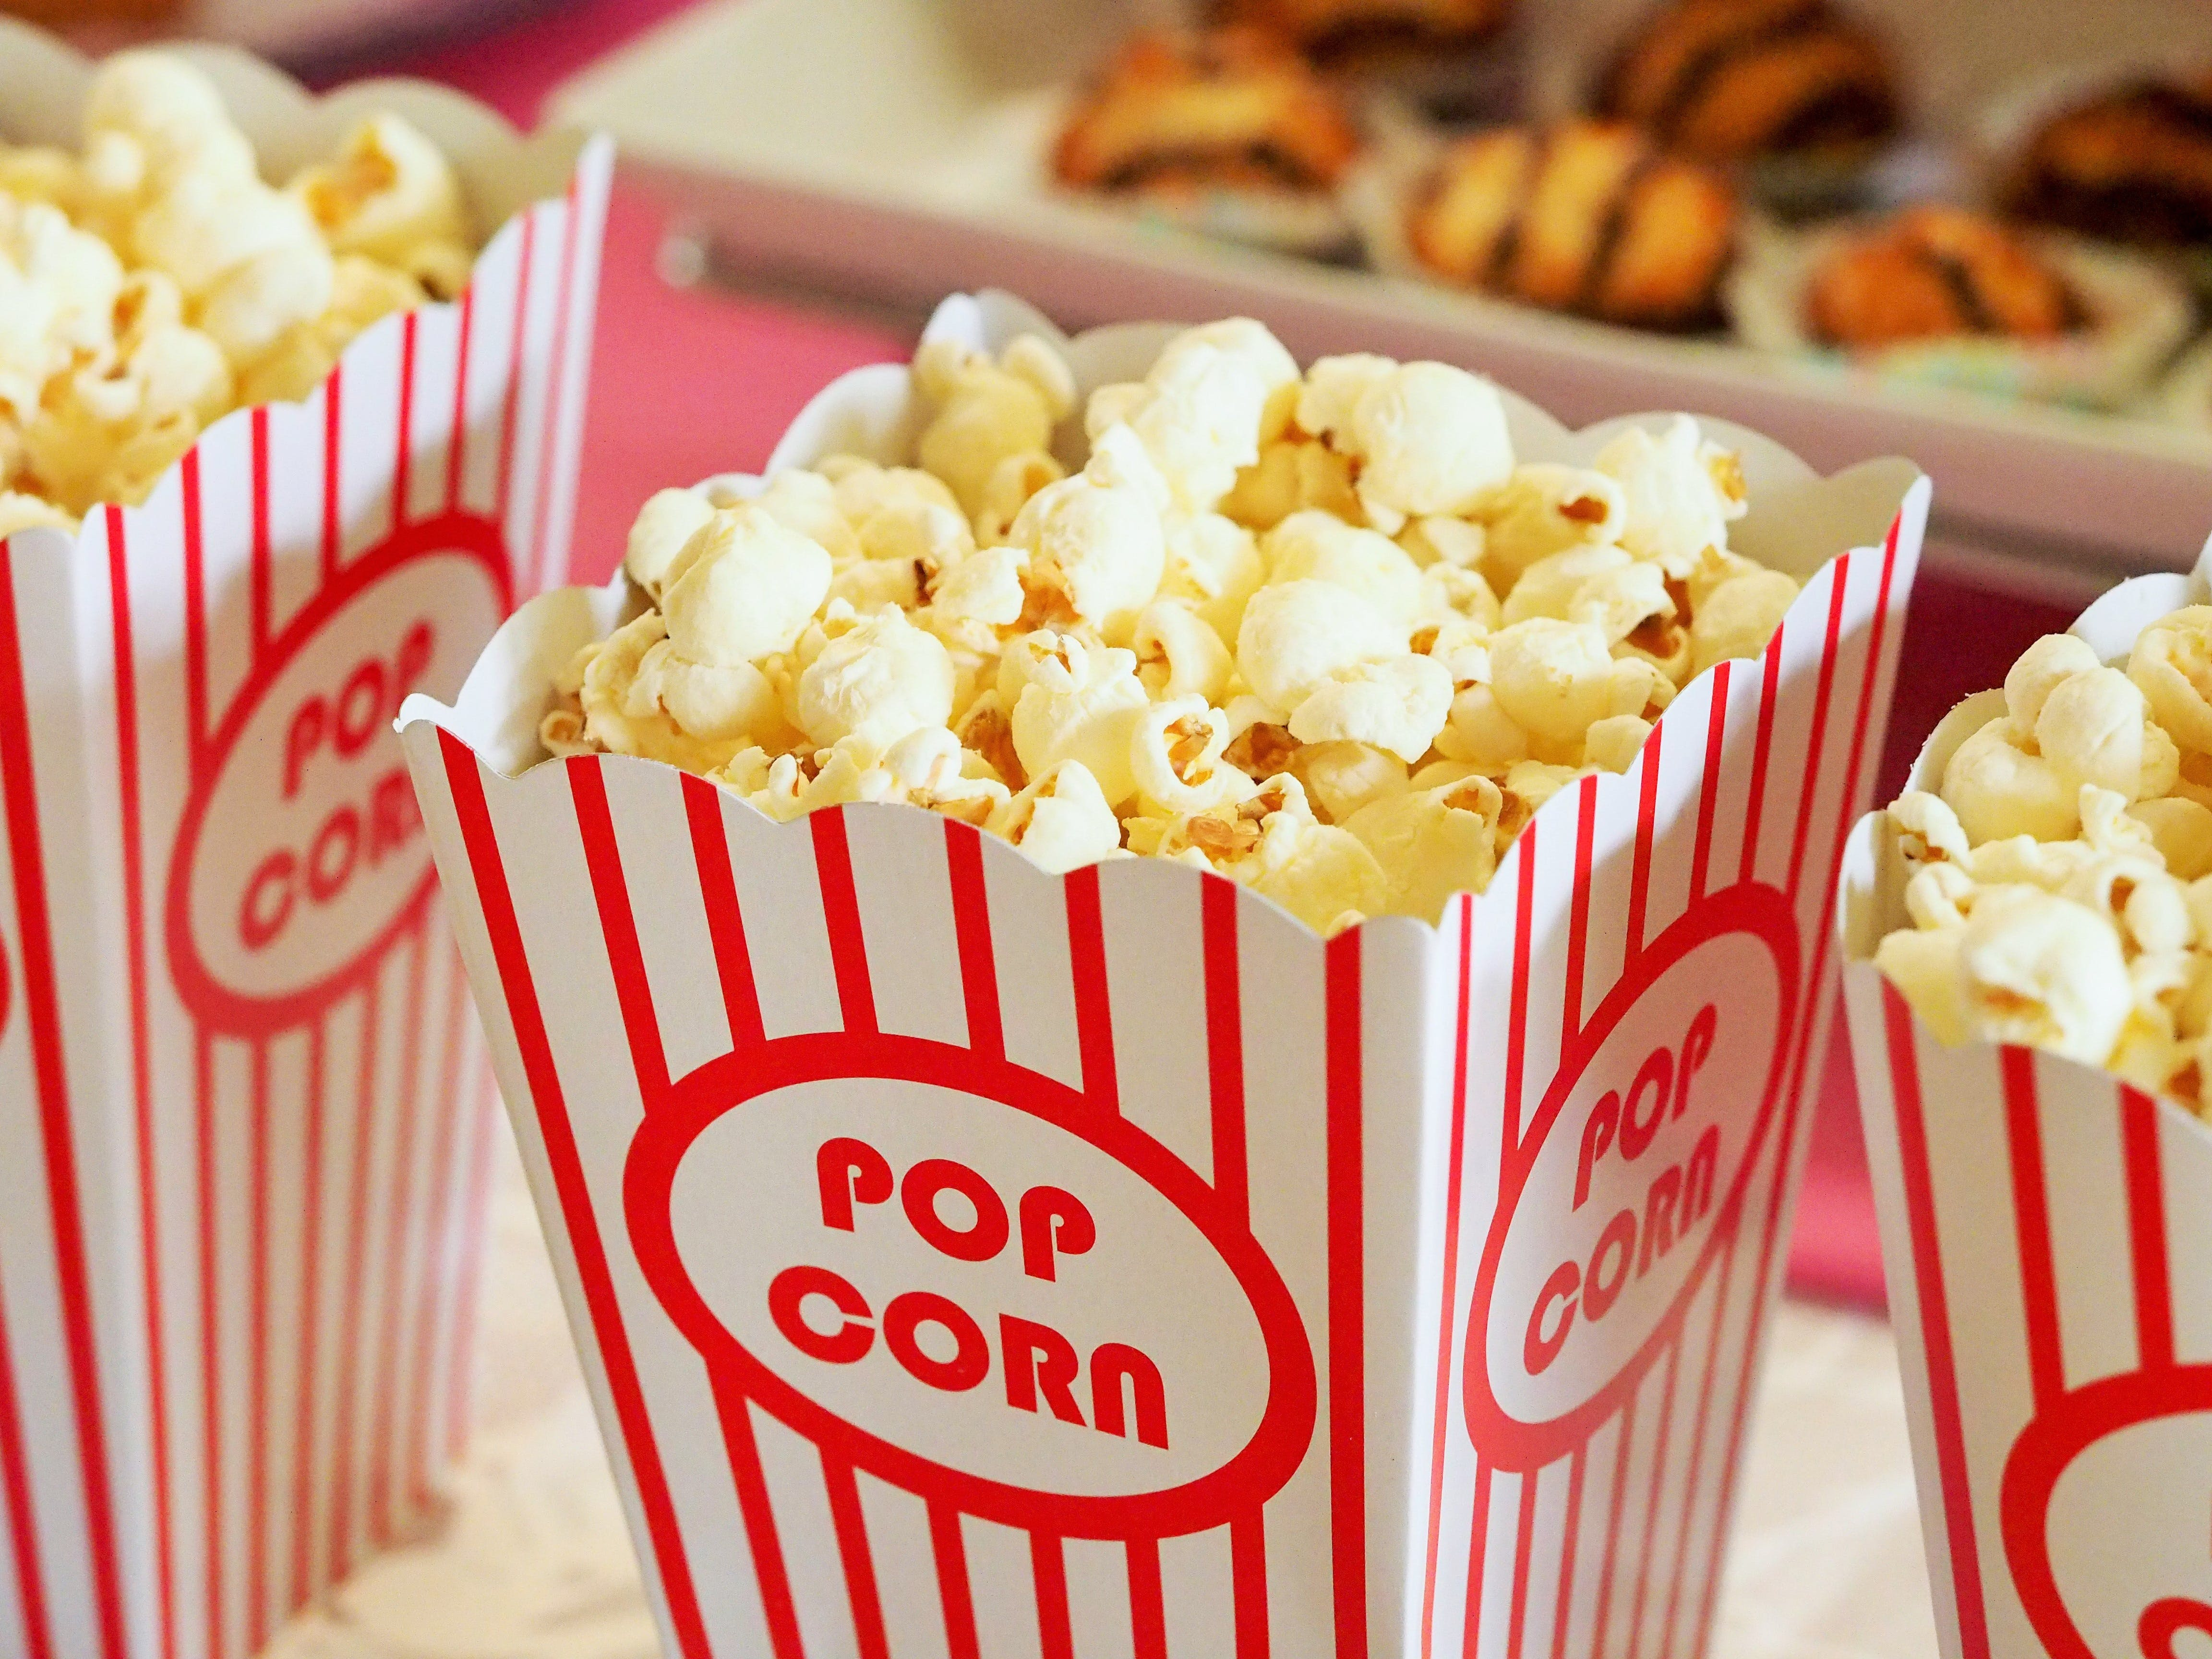 Free stock photo of food, sweet, snack, popcorn